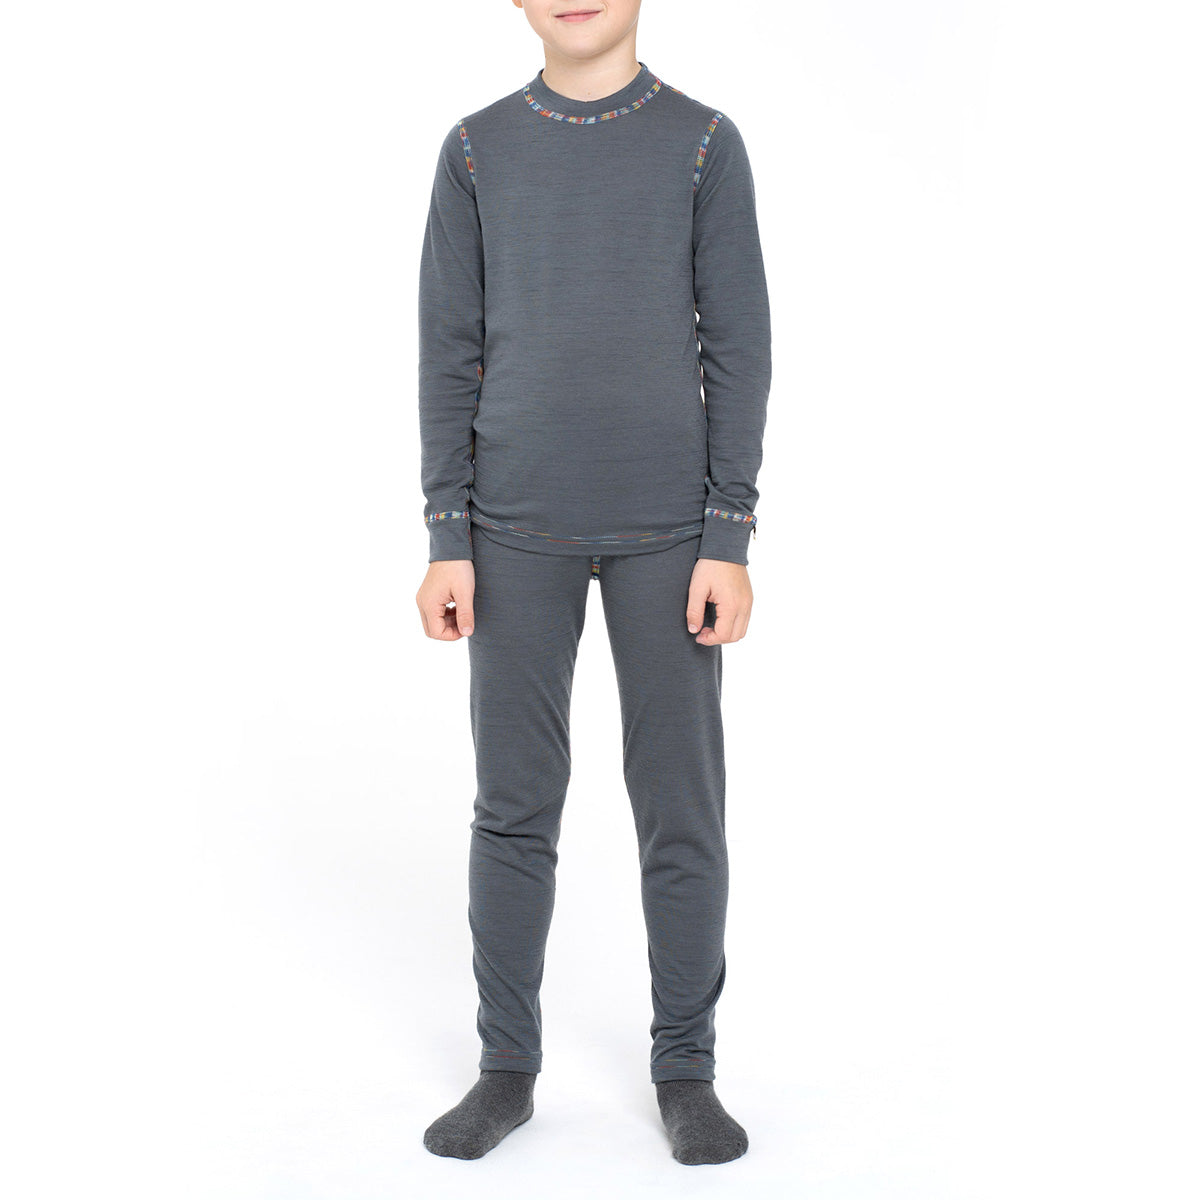 Kids' Long Sleeve Set 160gsm Merino Wool Perfect Grey